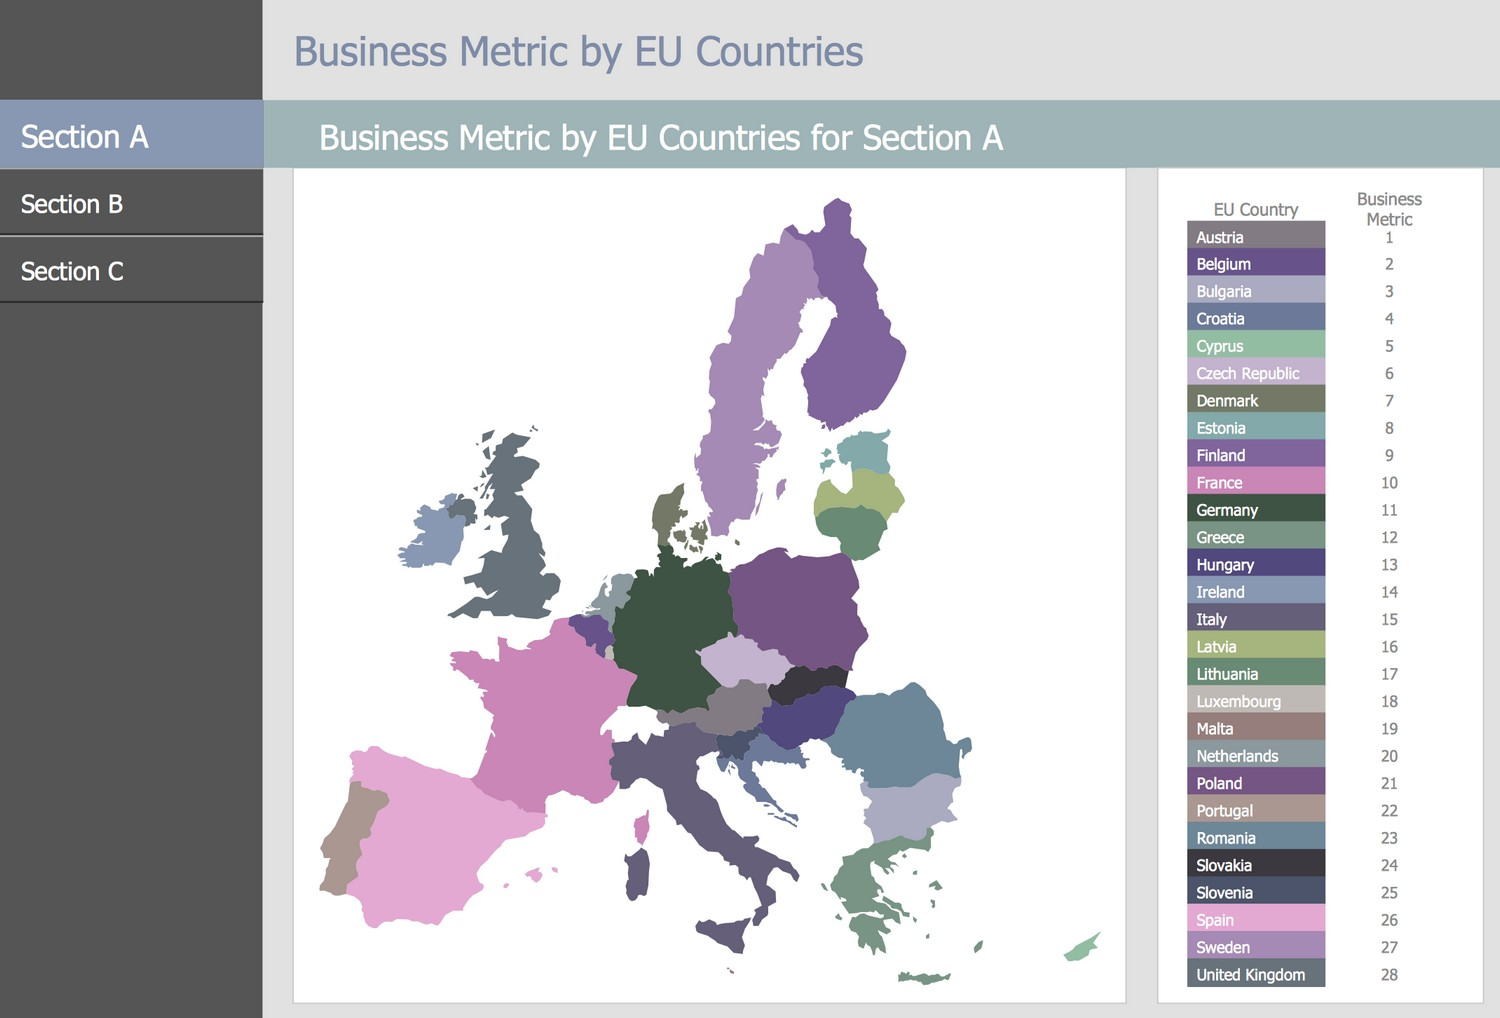 Business Intelligence Dashboard Template - Business Metric by EU Countries for 3 Sections